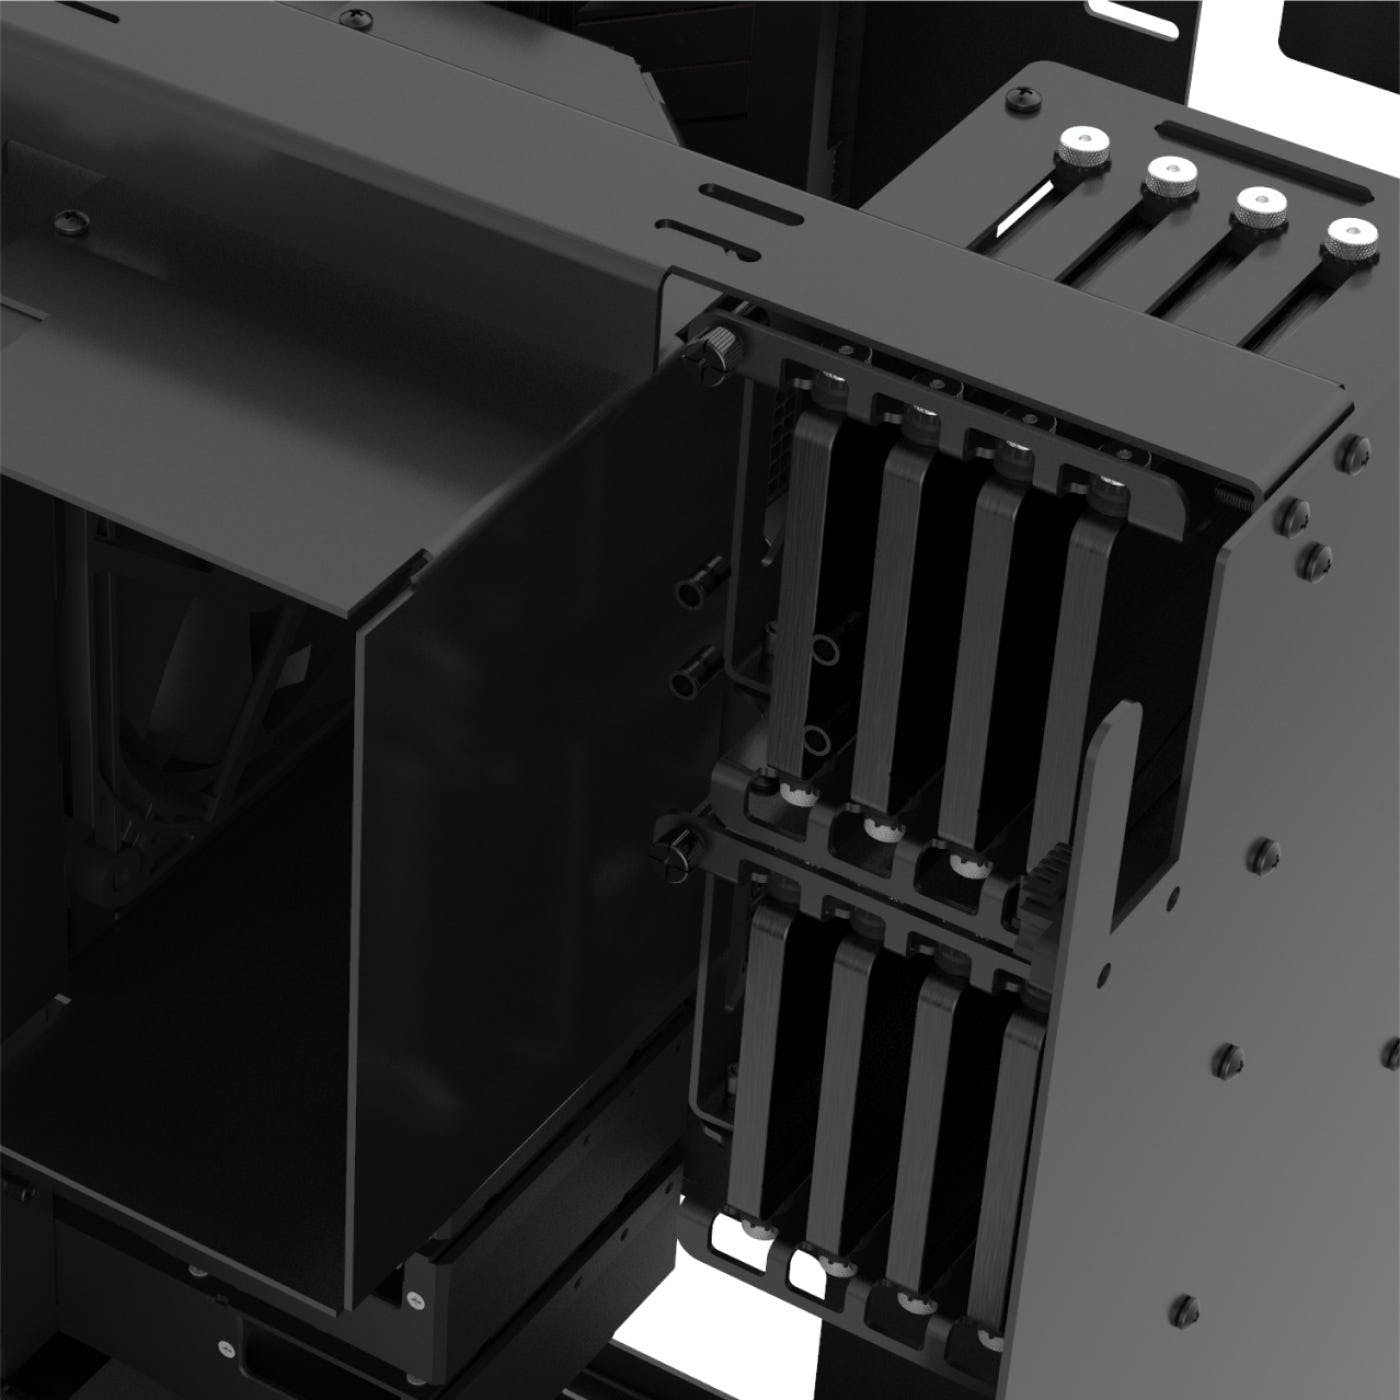 Detail of the machine interior showing storage drives inside the aluminum cages.